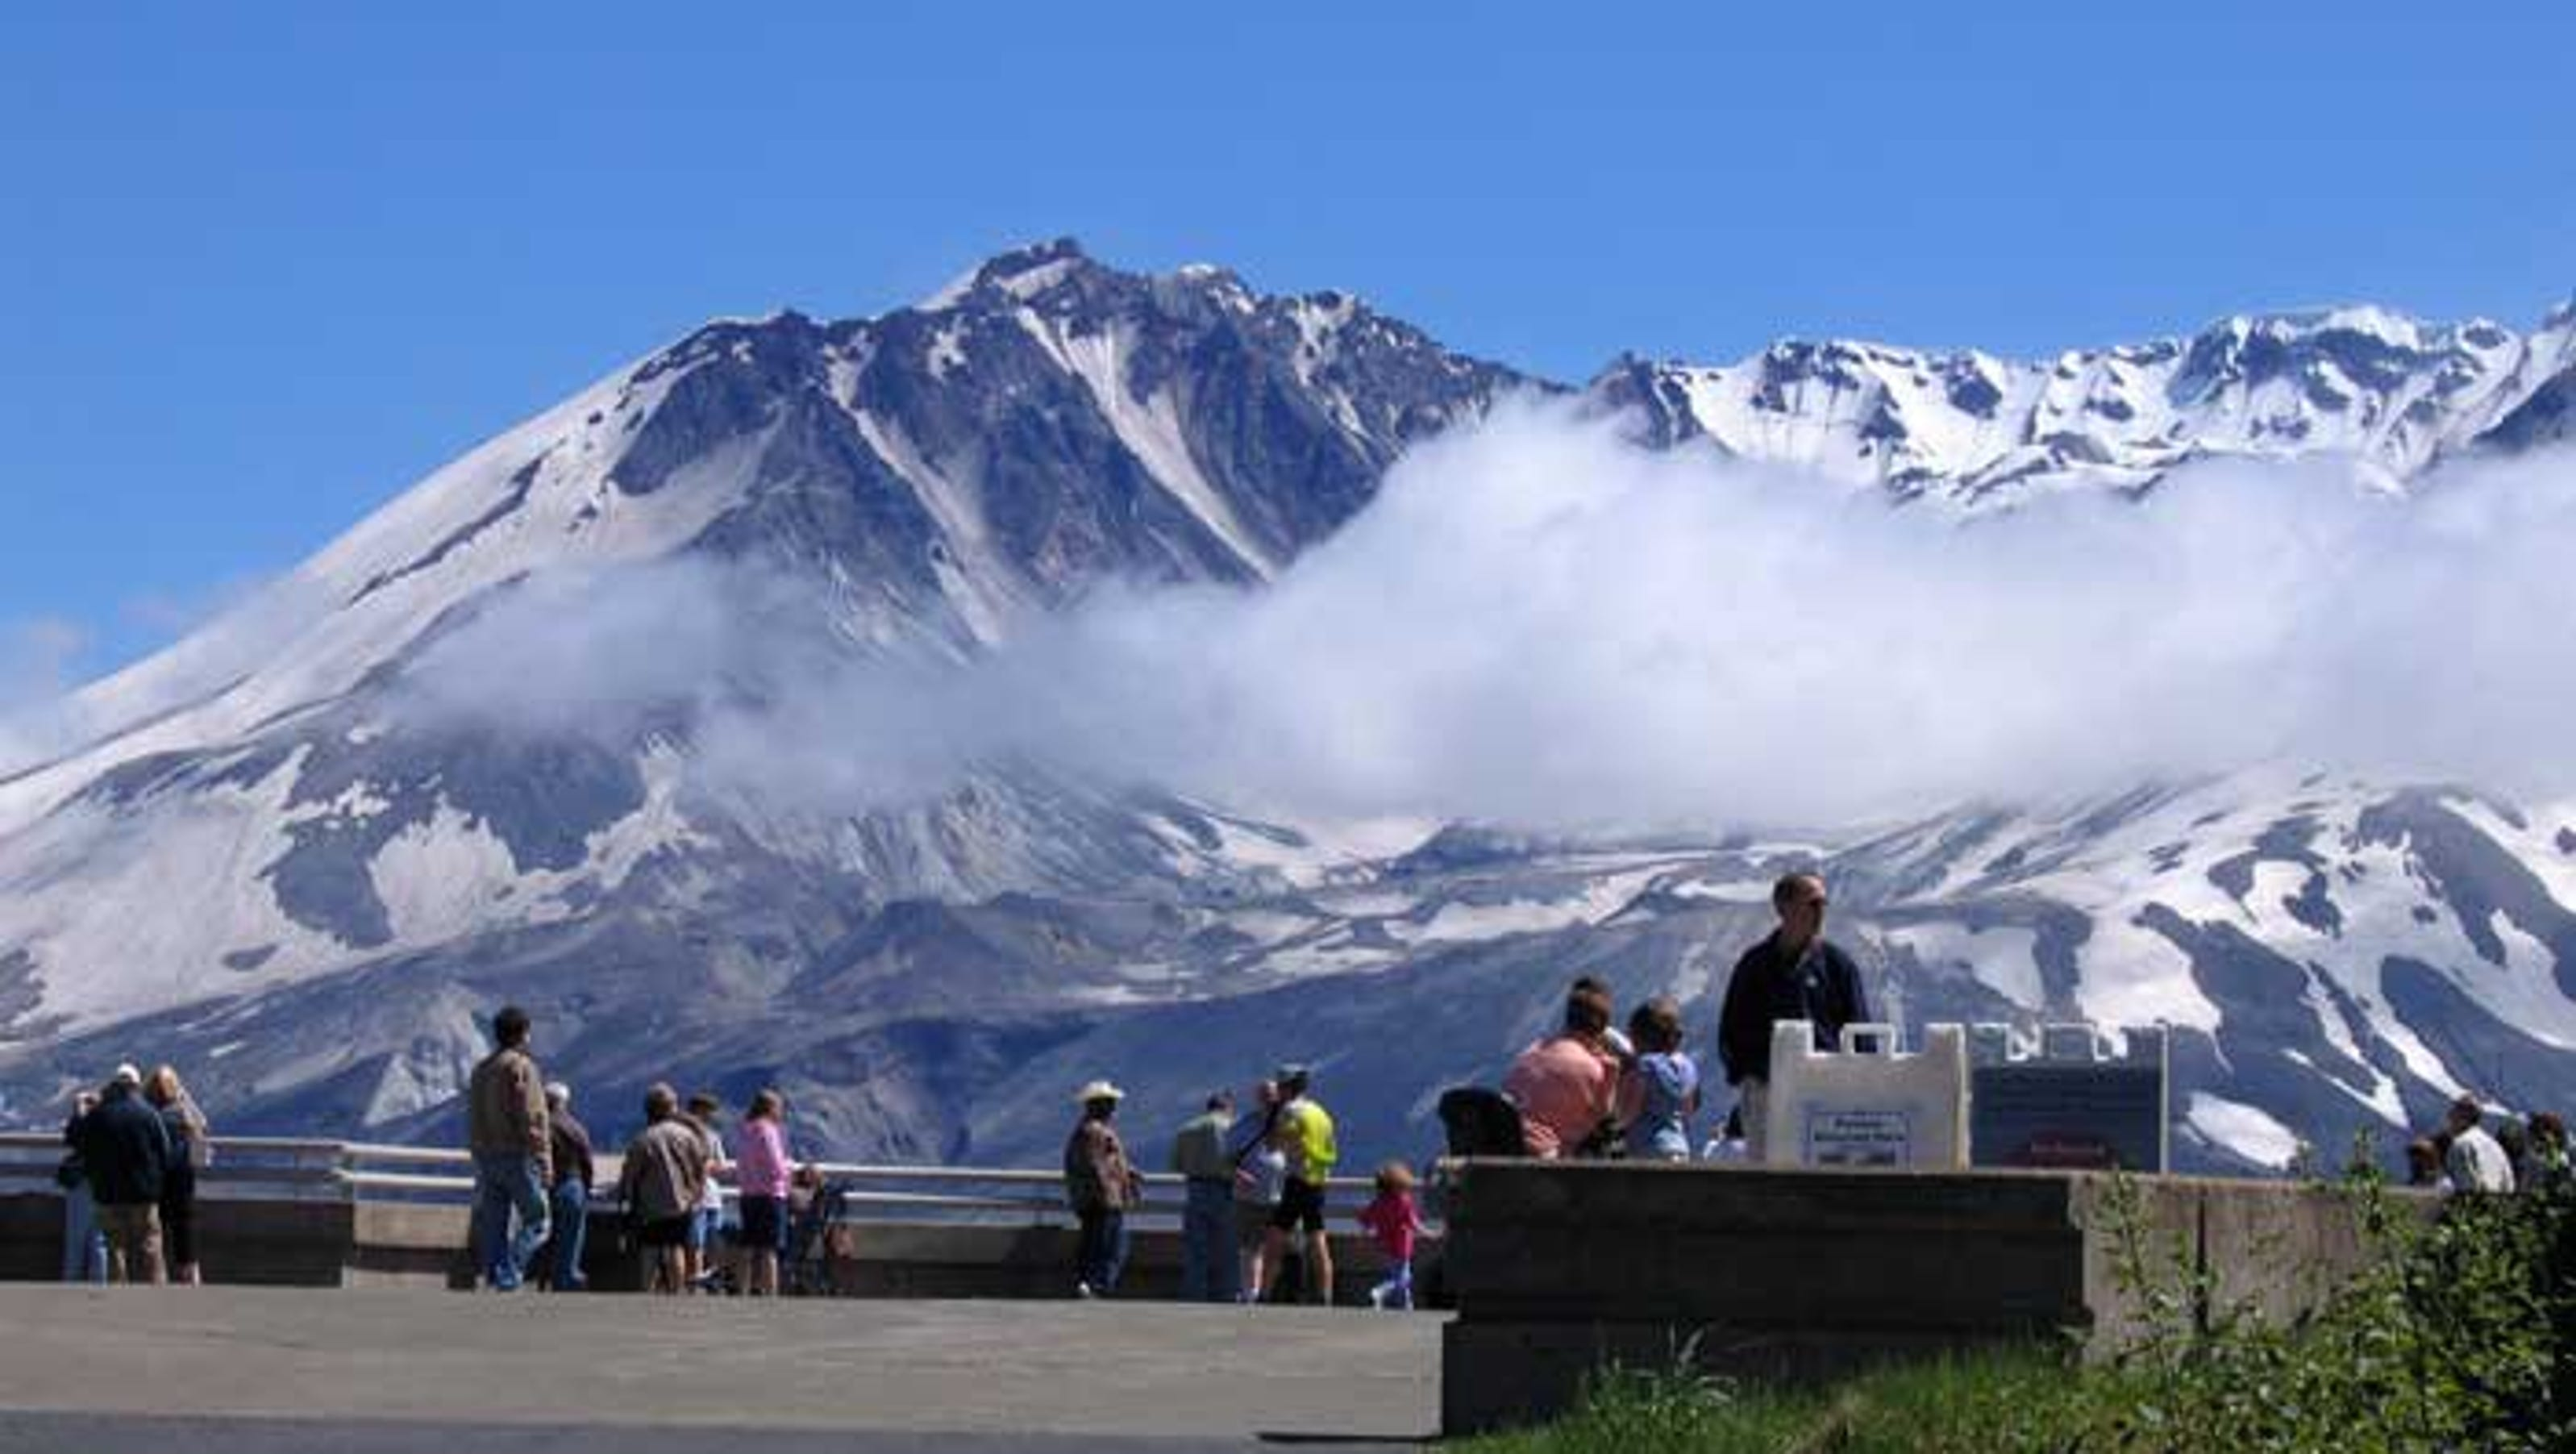 Mount St. Helens shows signs of reawakening